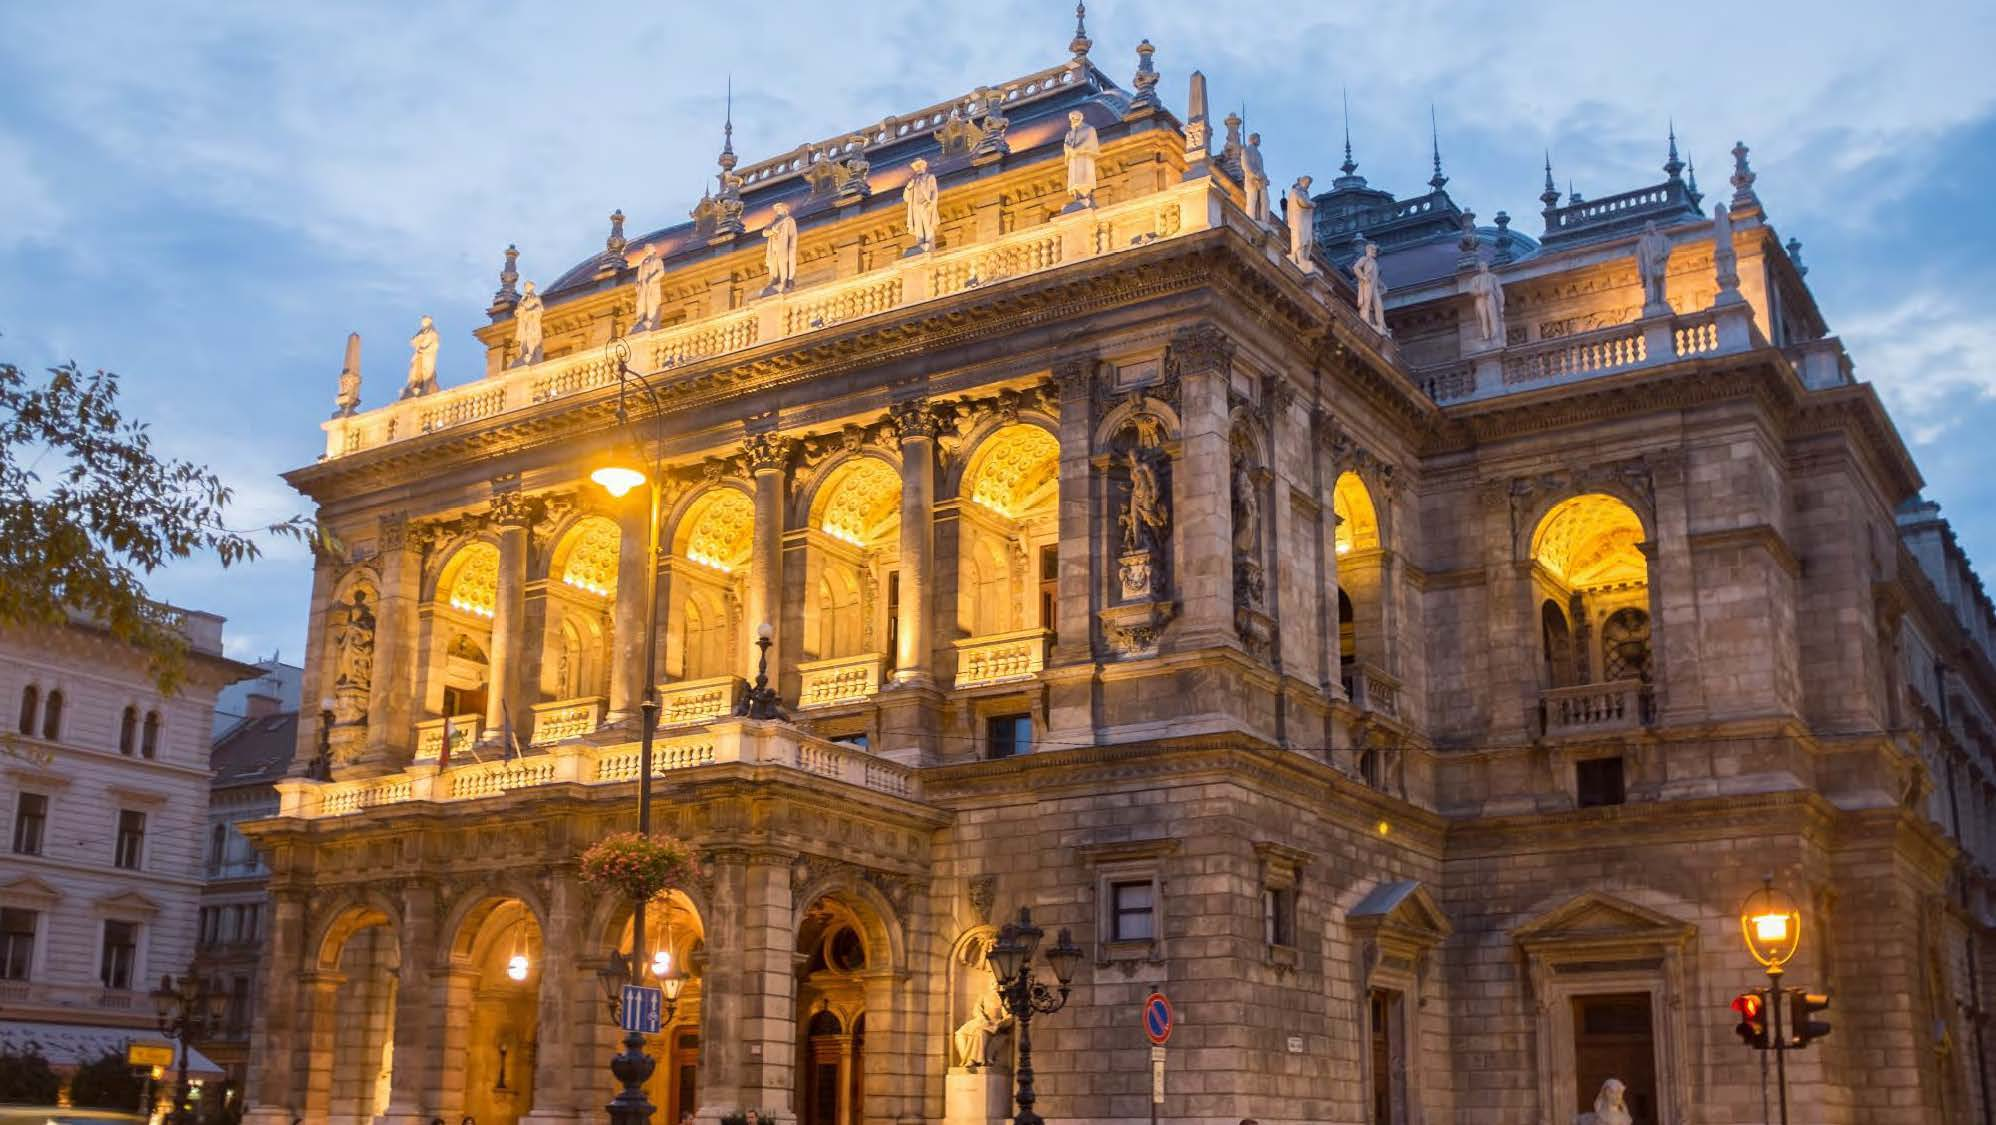 The Hungarian State Opera House in Budapest, Hungary